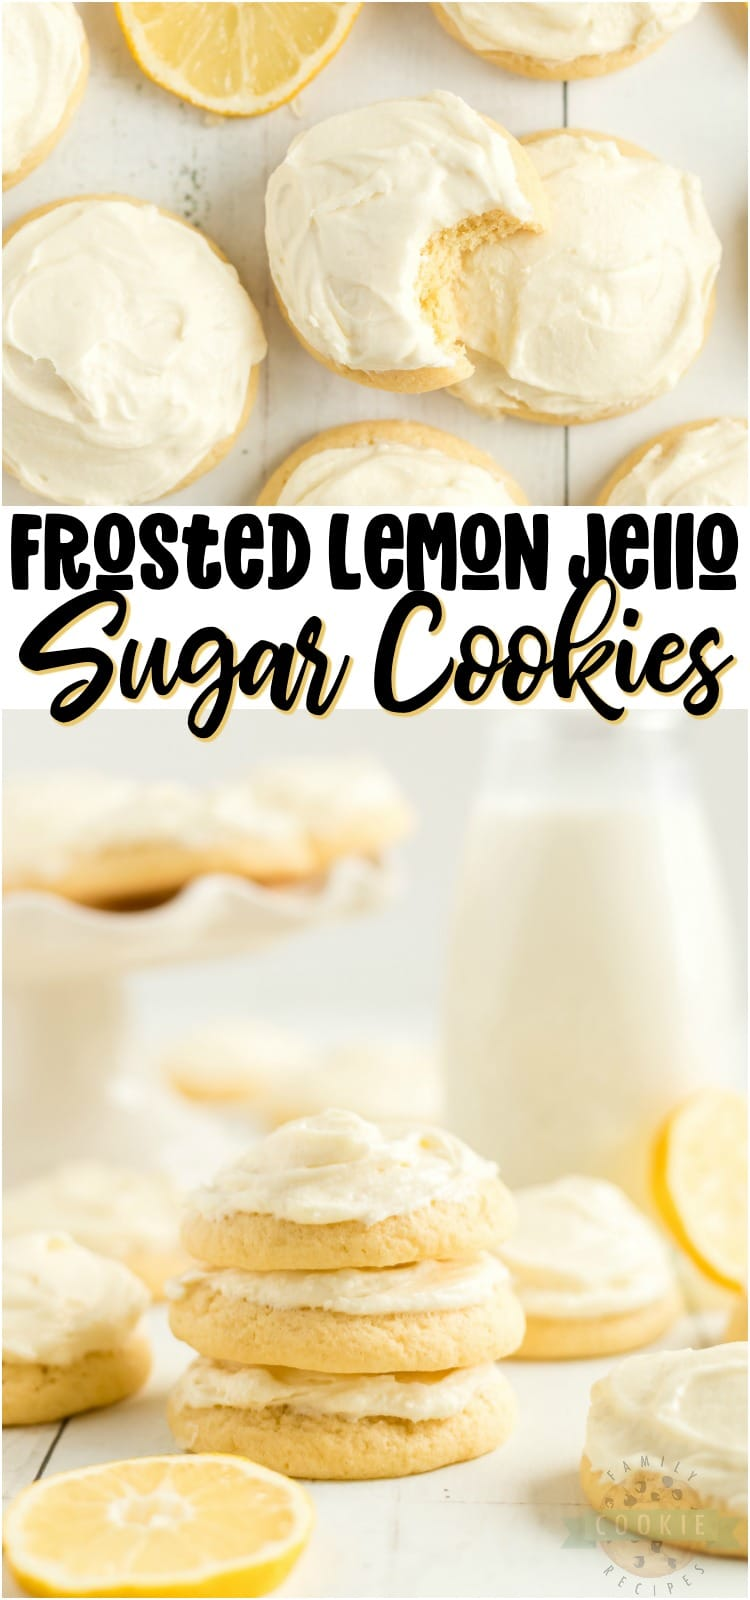 Lemon Jello Sugar Cookies are delicious cookies made with lemon jello! Easy sugar cookie recipe with a simple buttercream frosting perfect for lemon lovers.